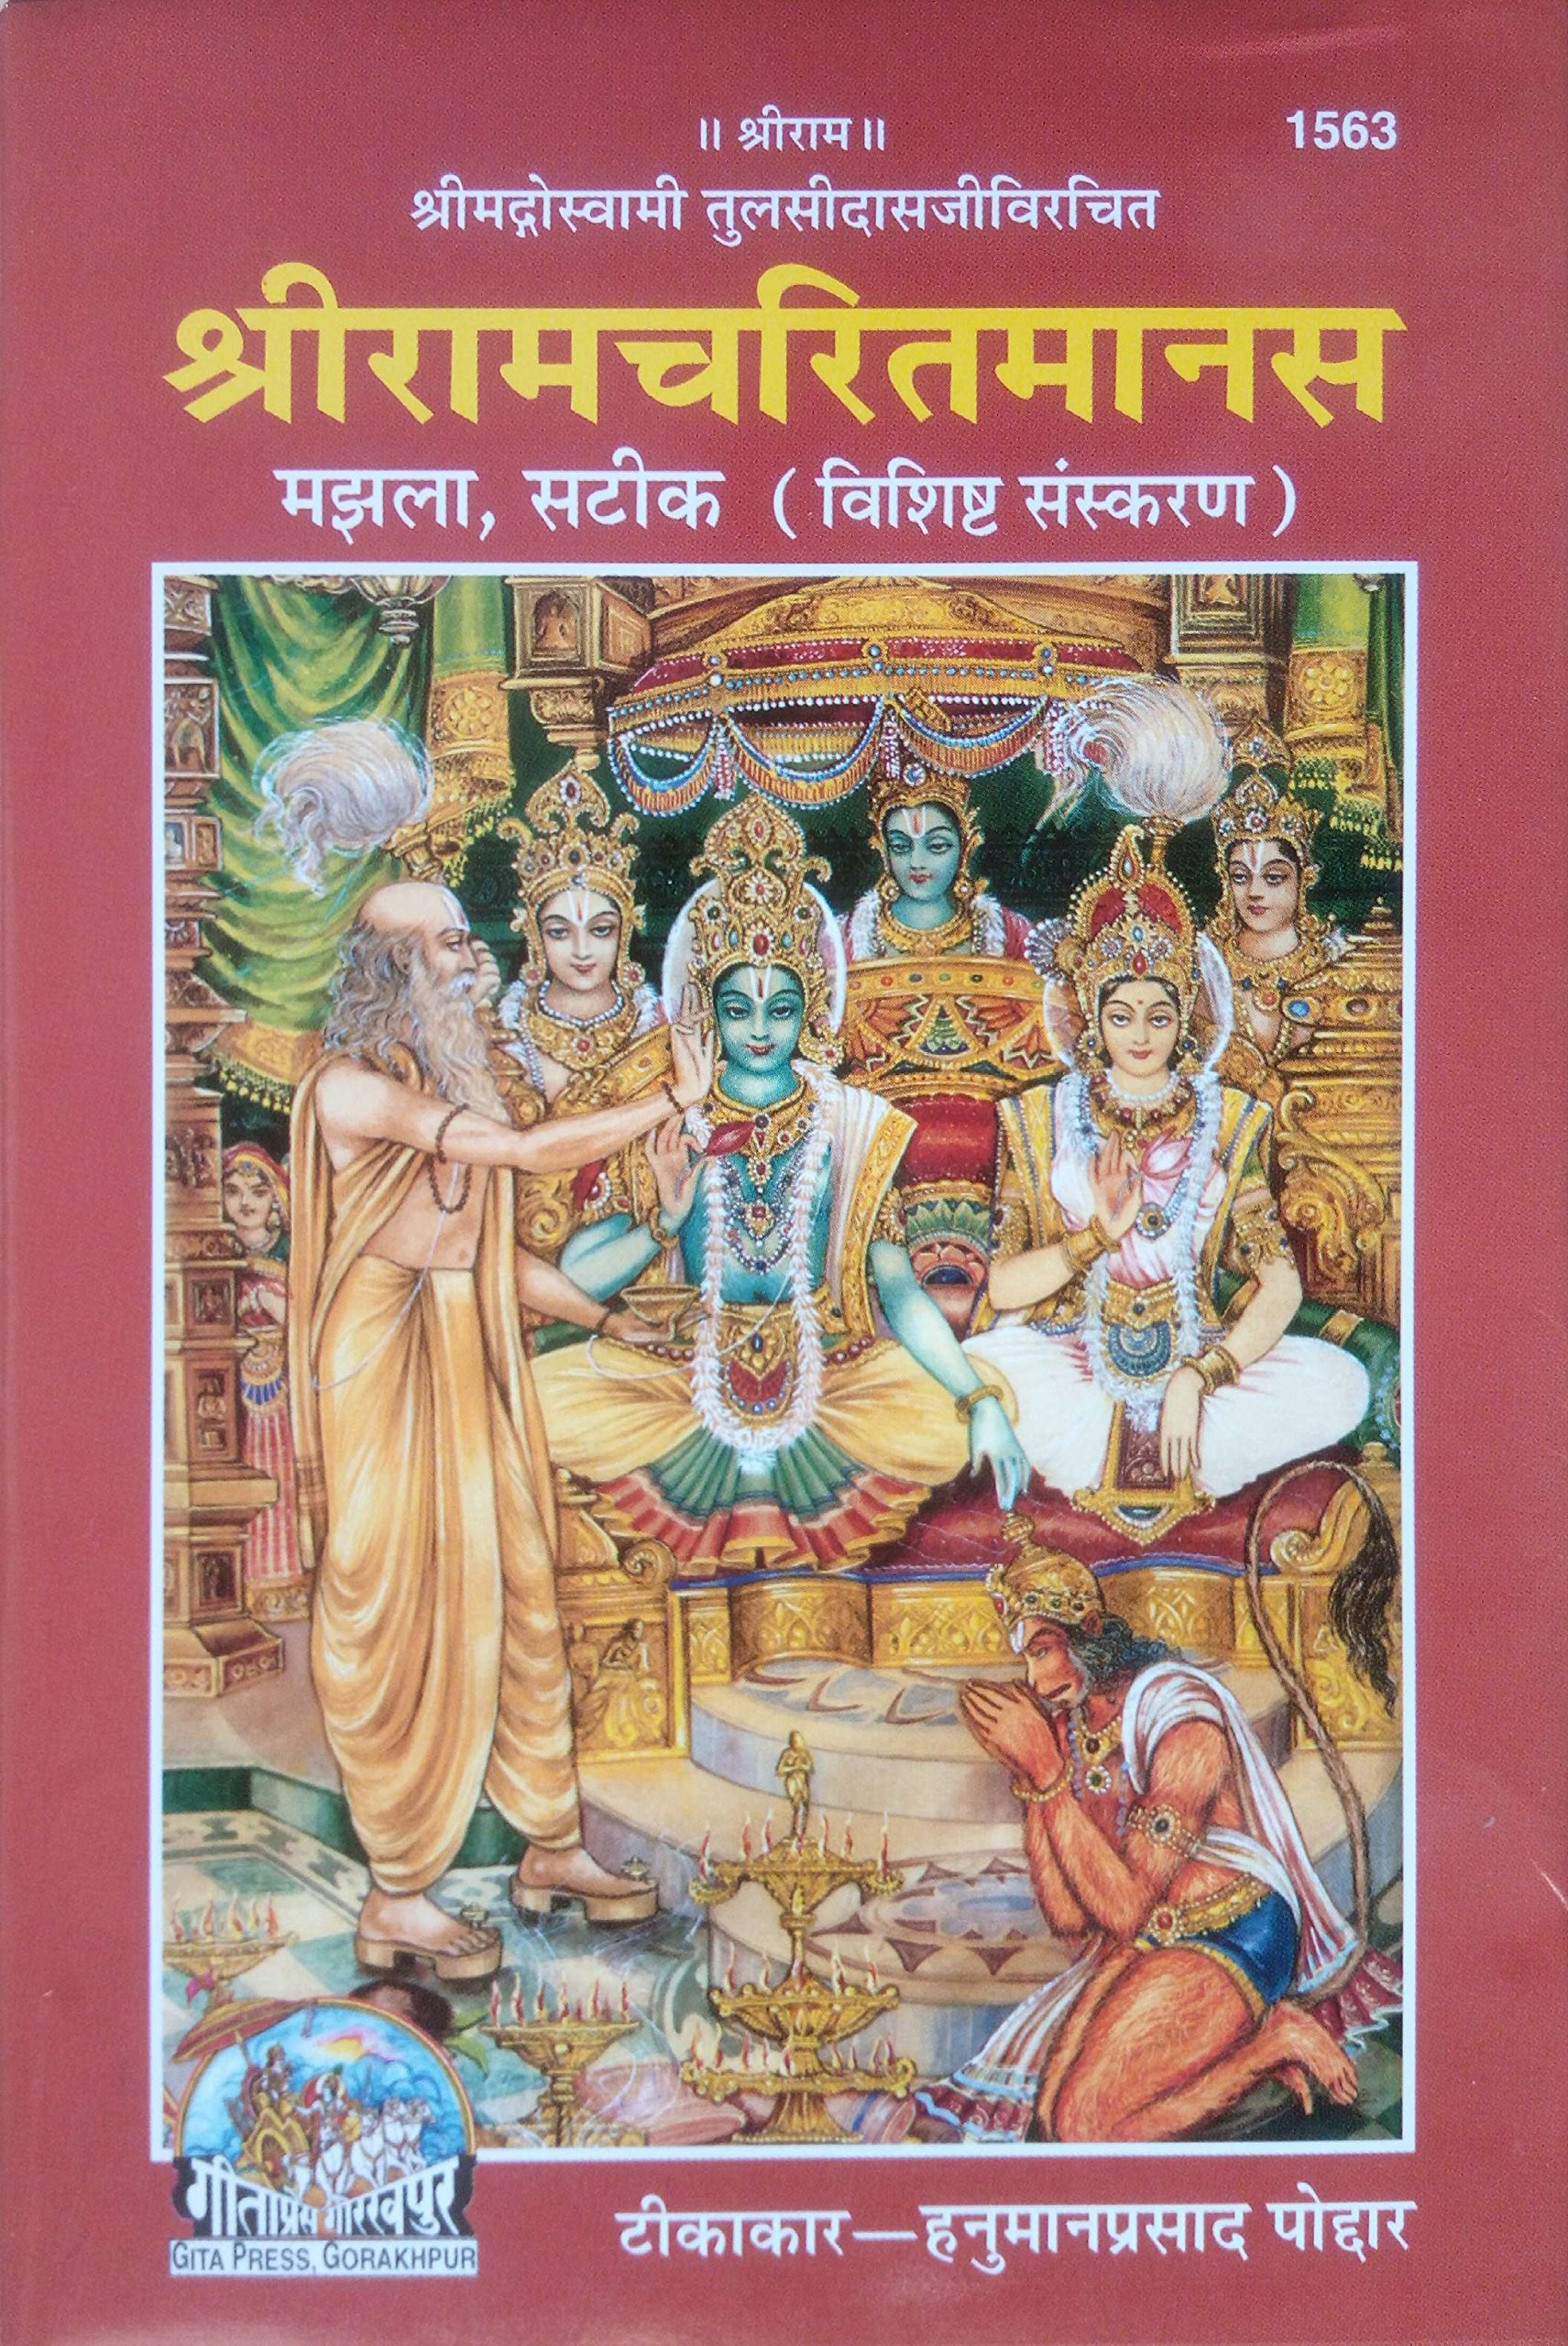 Sri ram charit manas hindi pdf download